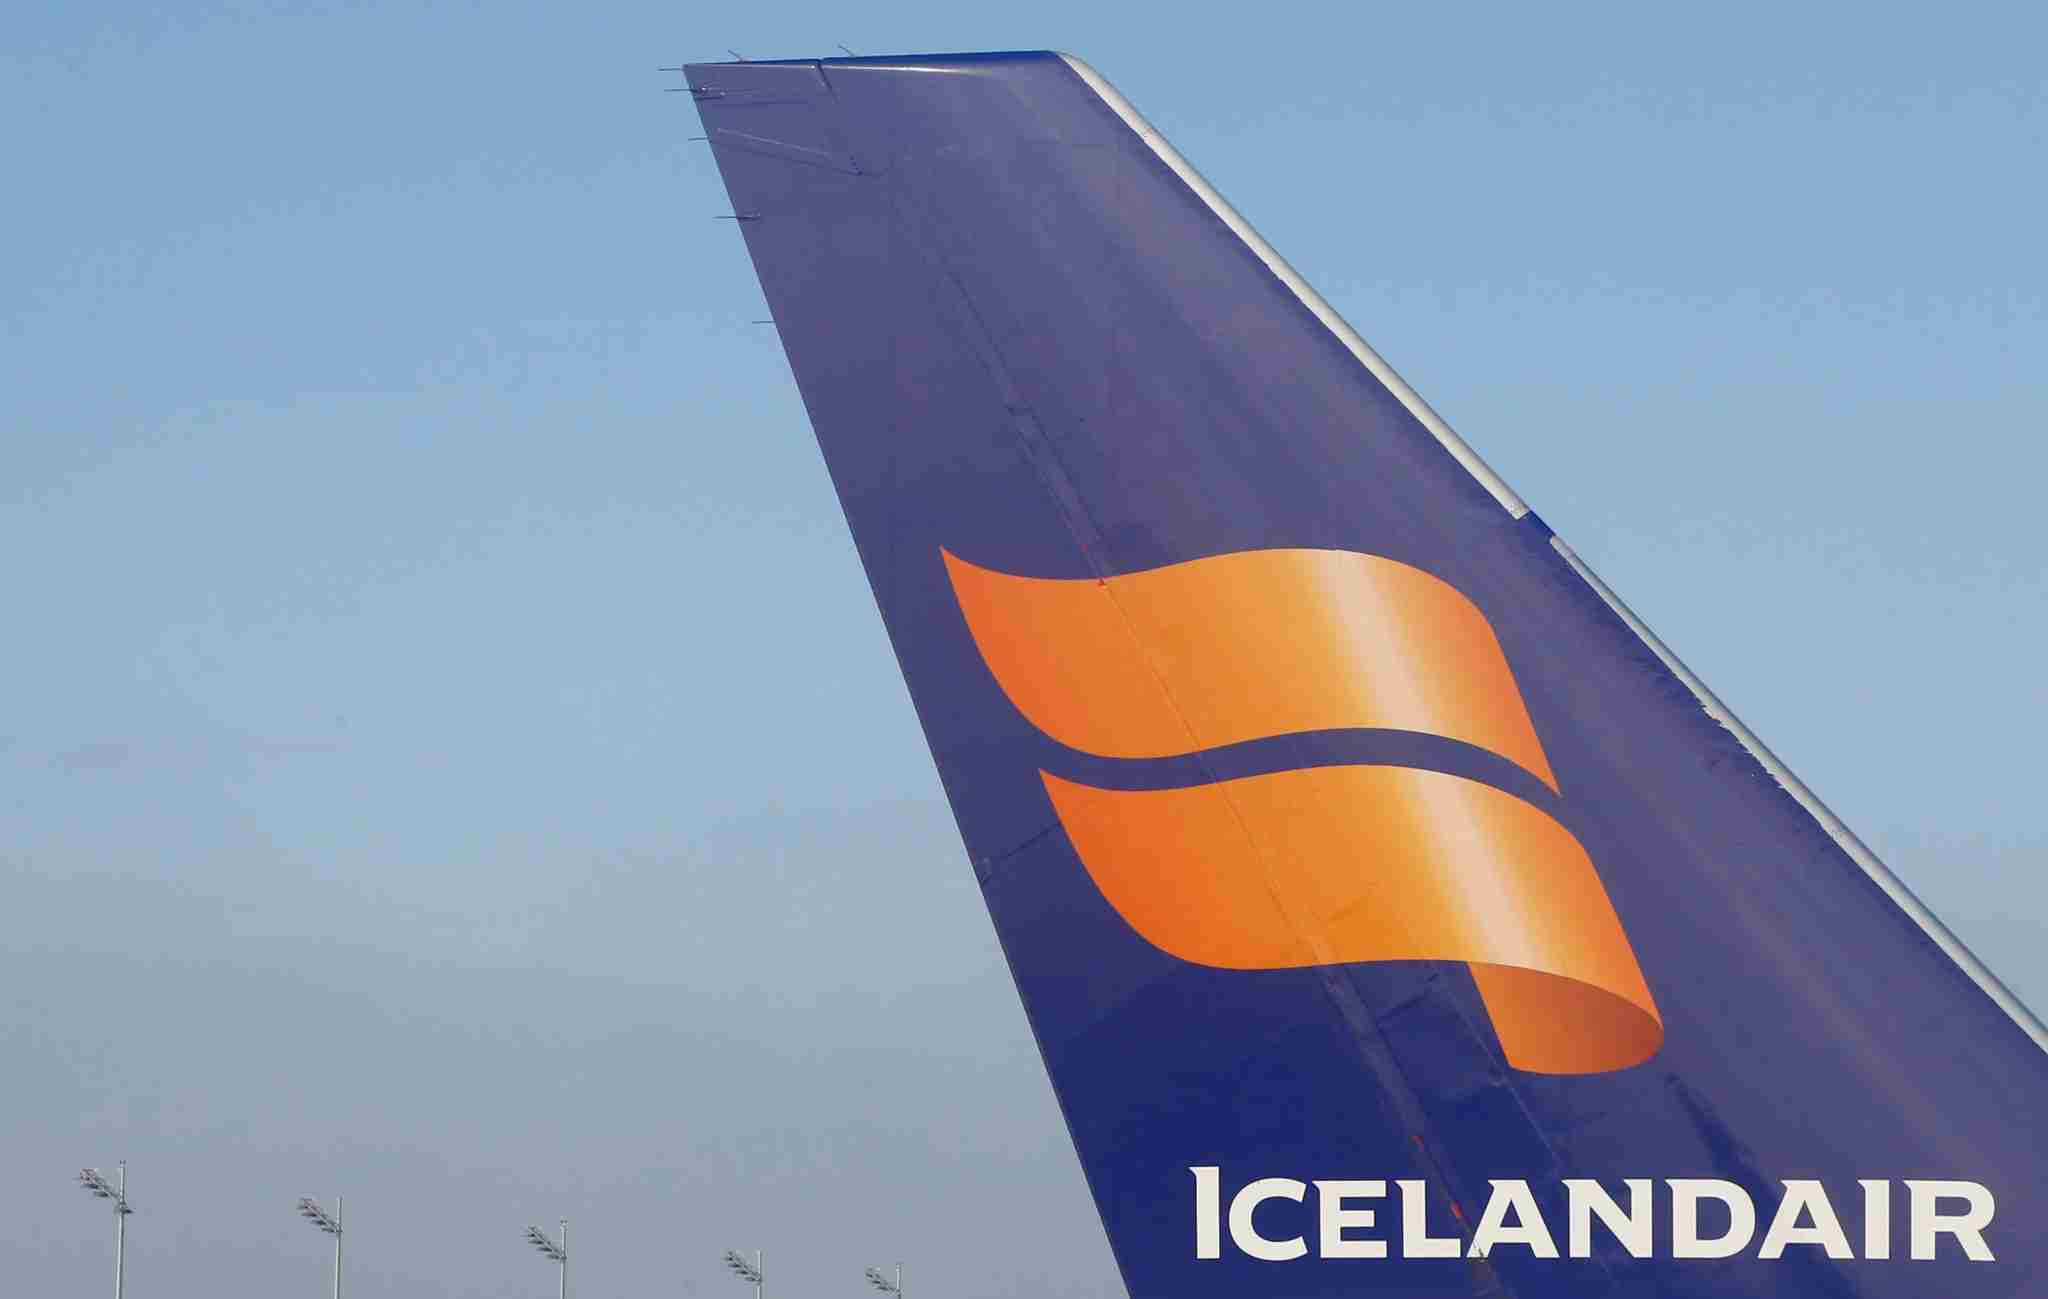 The tail of a Boeing 757 airplane shows the Icelandair logo at the Munich airport in Germany on Nov. 13, 2012. (Photo by Alexander Klein, AFP/Getty Images)